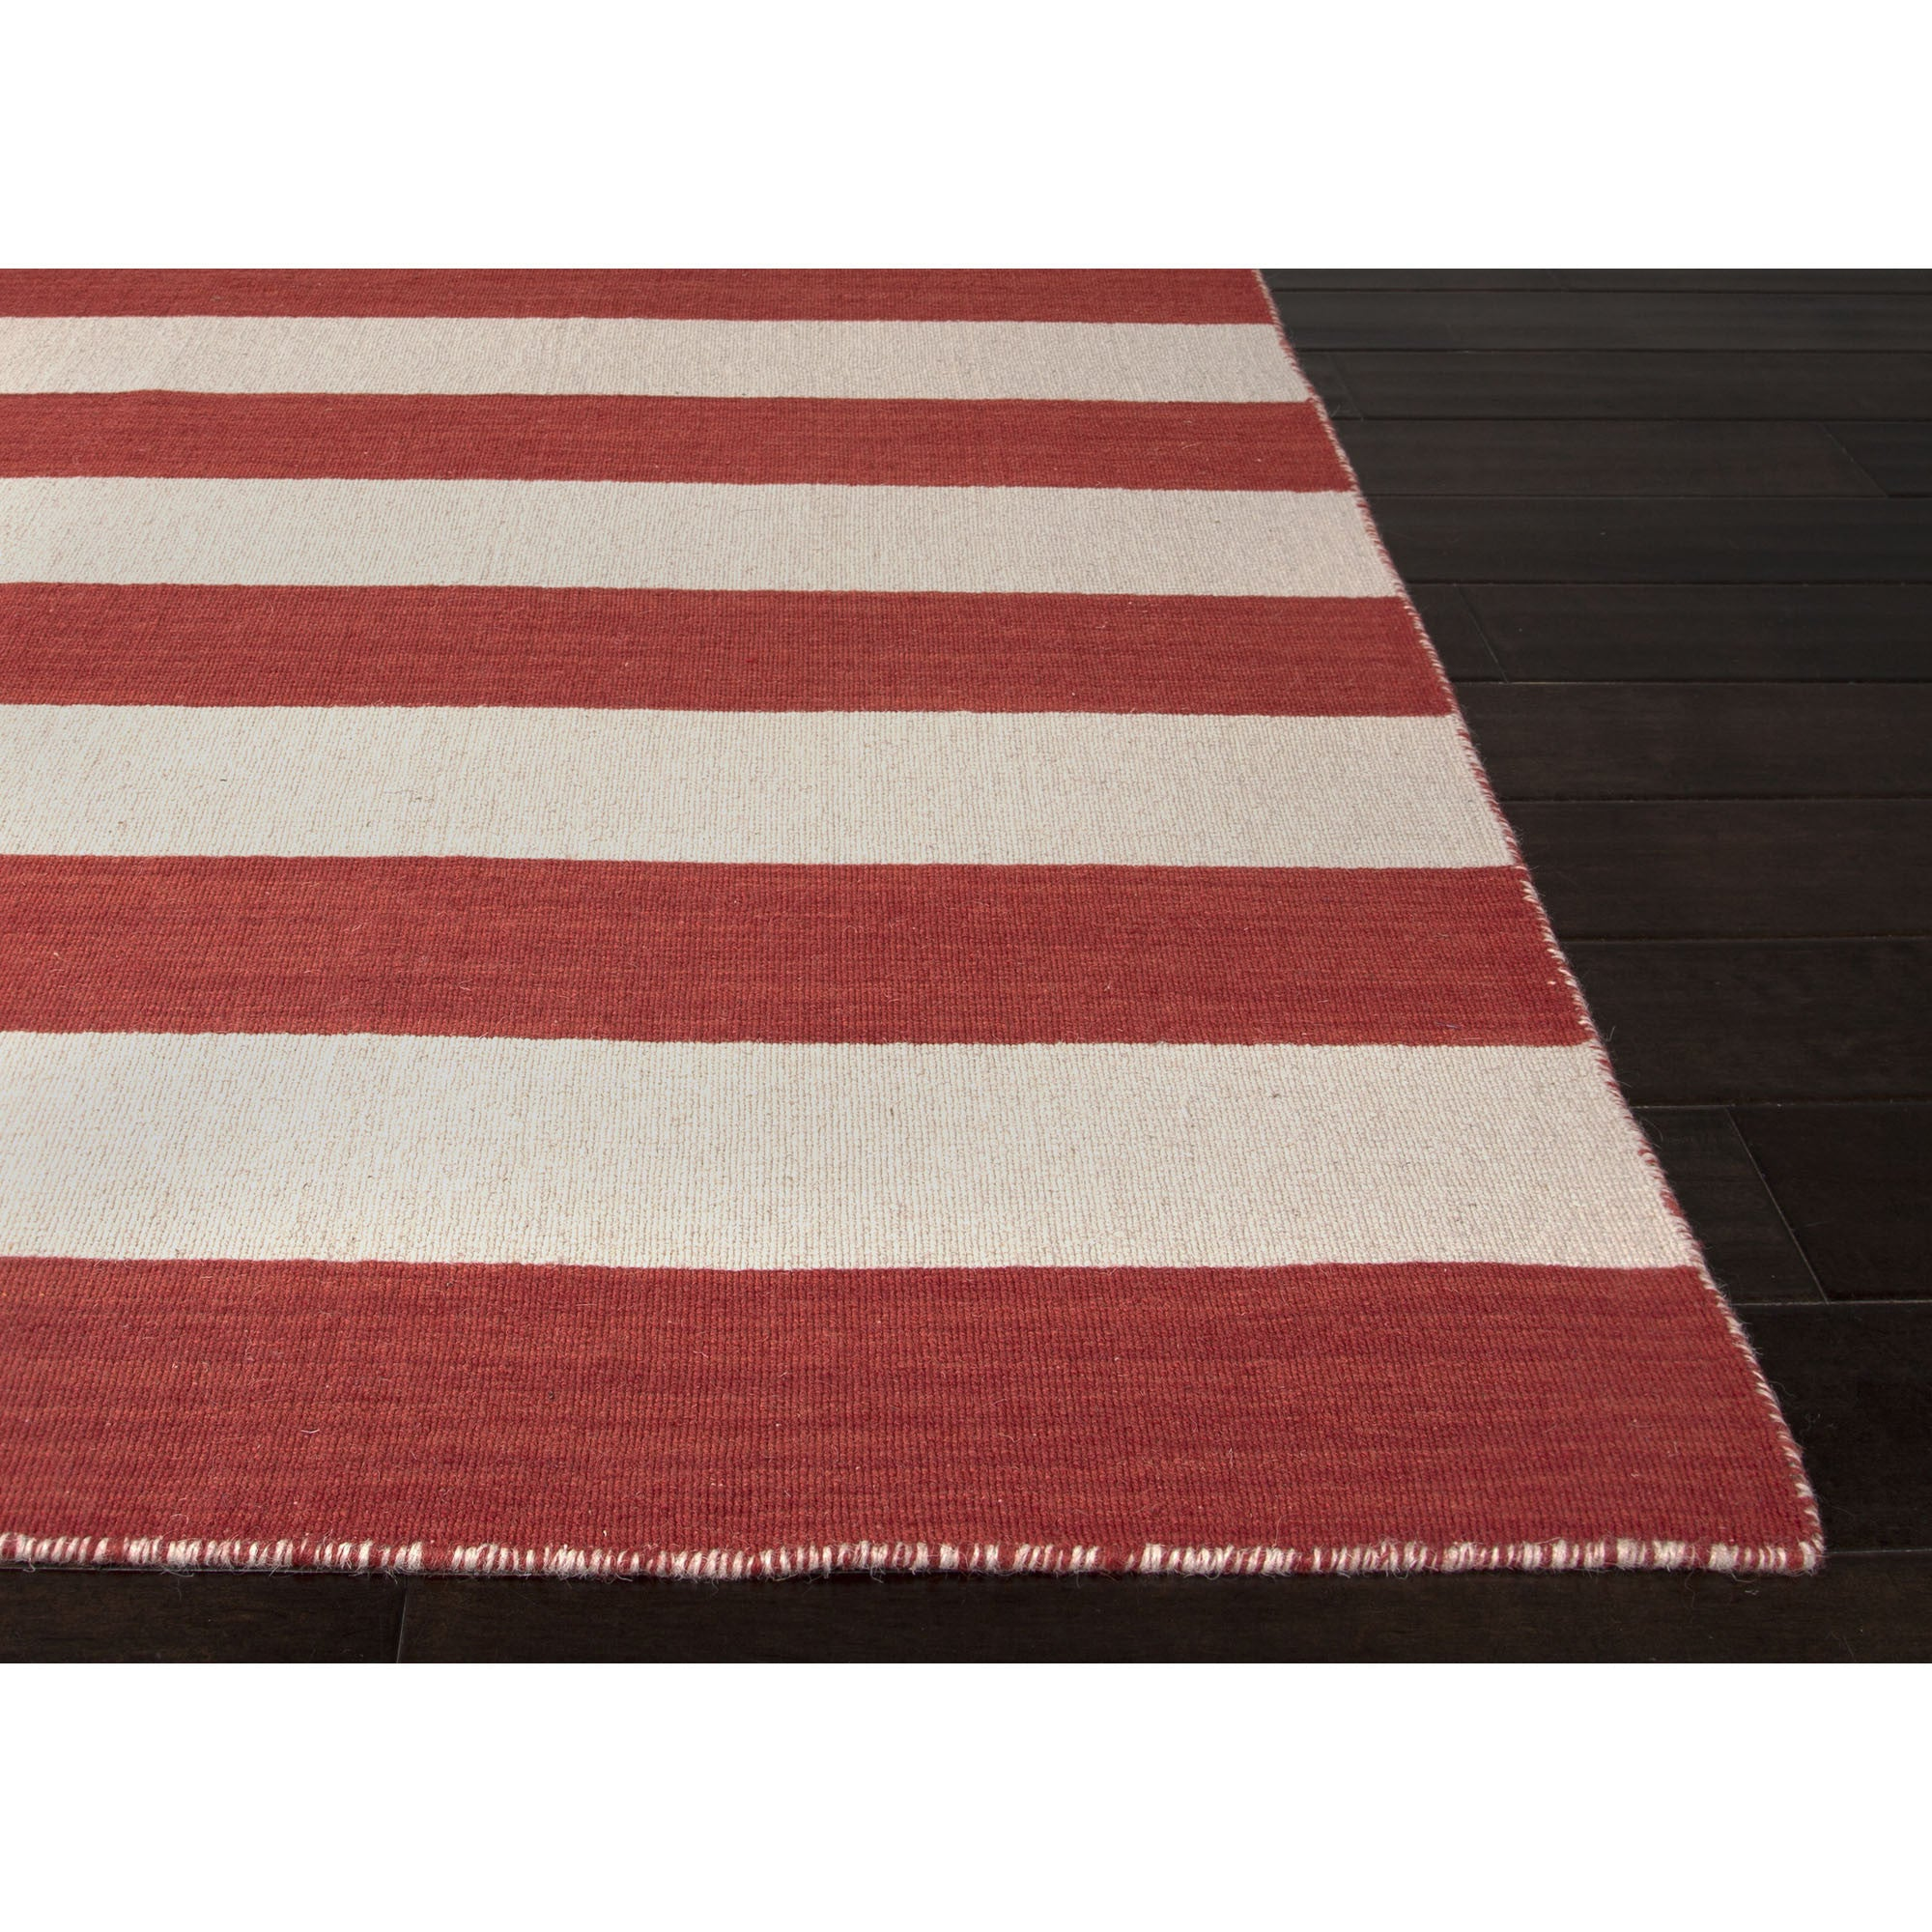 Jaipur rugs flatweave stripe pattern red ivory wool area for Red and white striped area rug